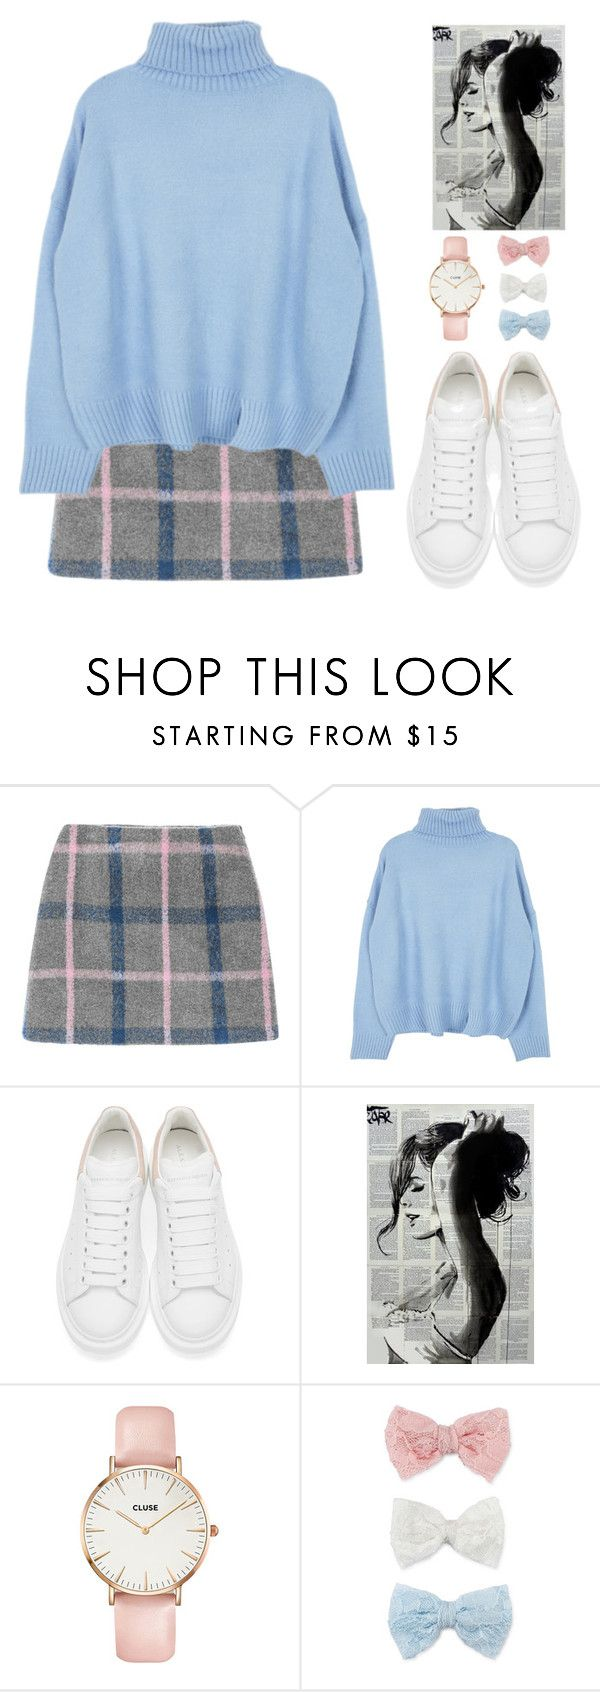 """trying hard not to fall on the way home."" by taylorjamiexo ❤ liked on Polyvore featuring Alexander McQueen, CLUSE and Decree"